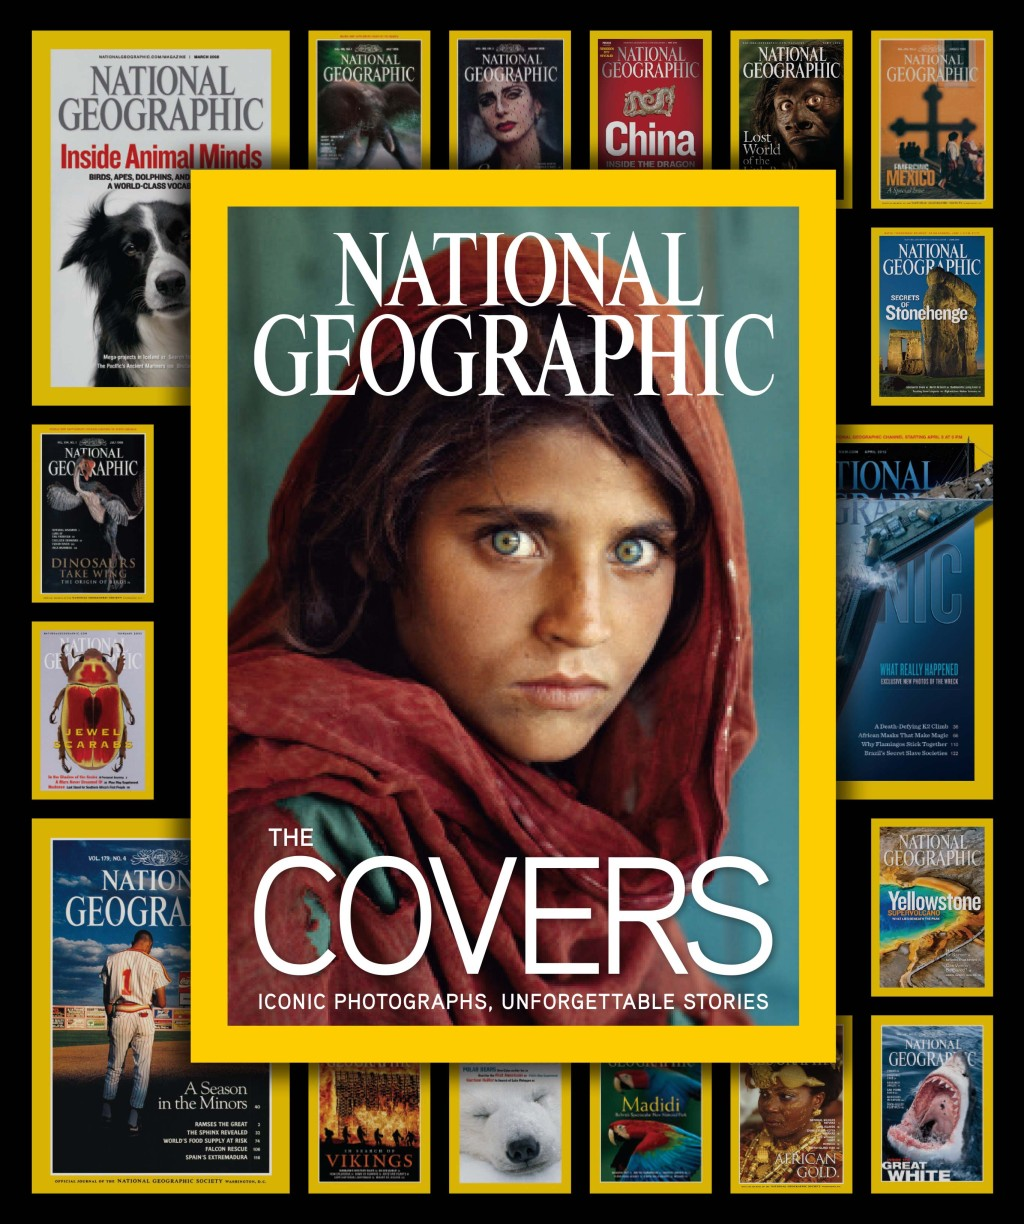 National-Geographic-Photo-Contest-1